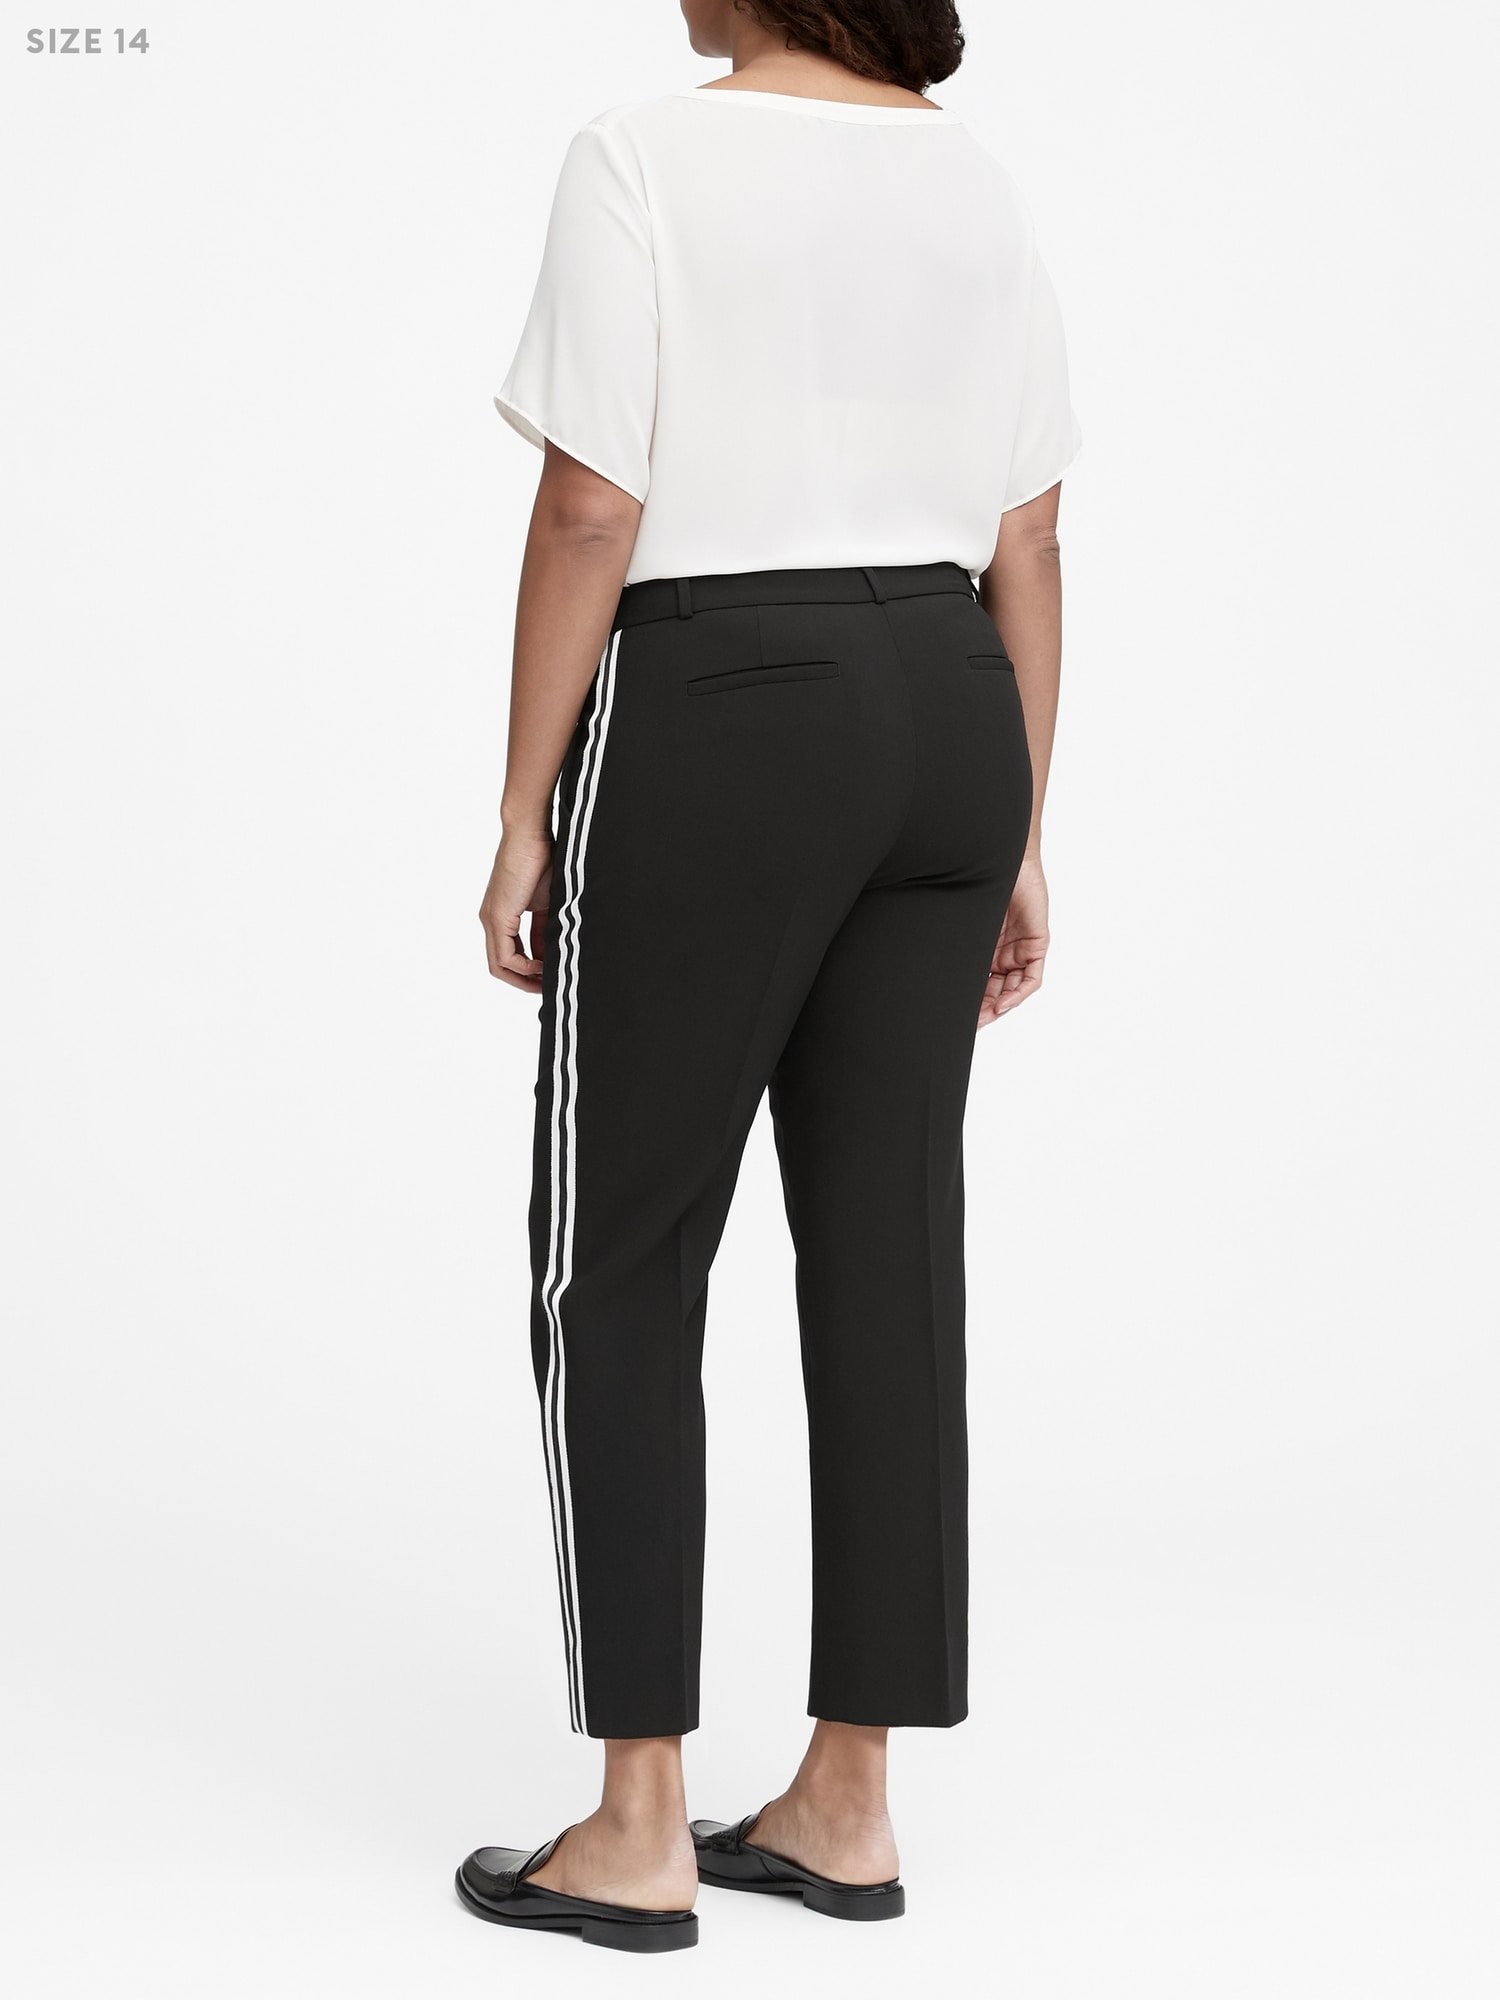 fdf69f4c44eac Avery Straight-Fit Tuxedo Ankle Pant